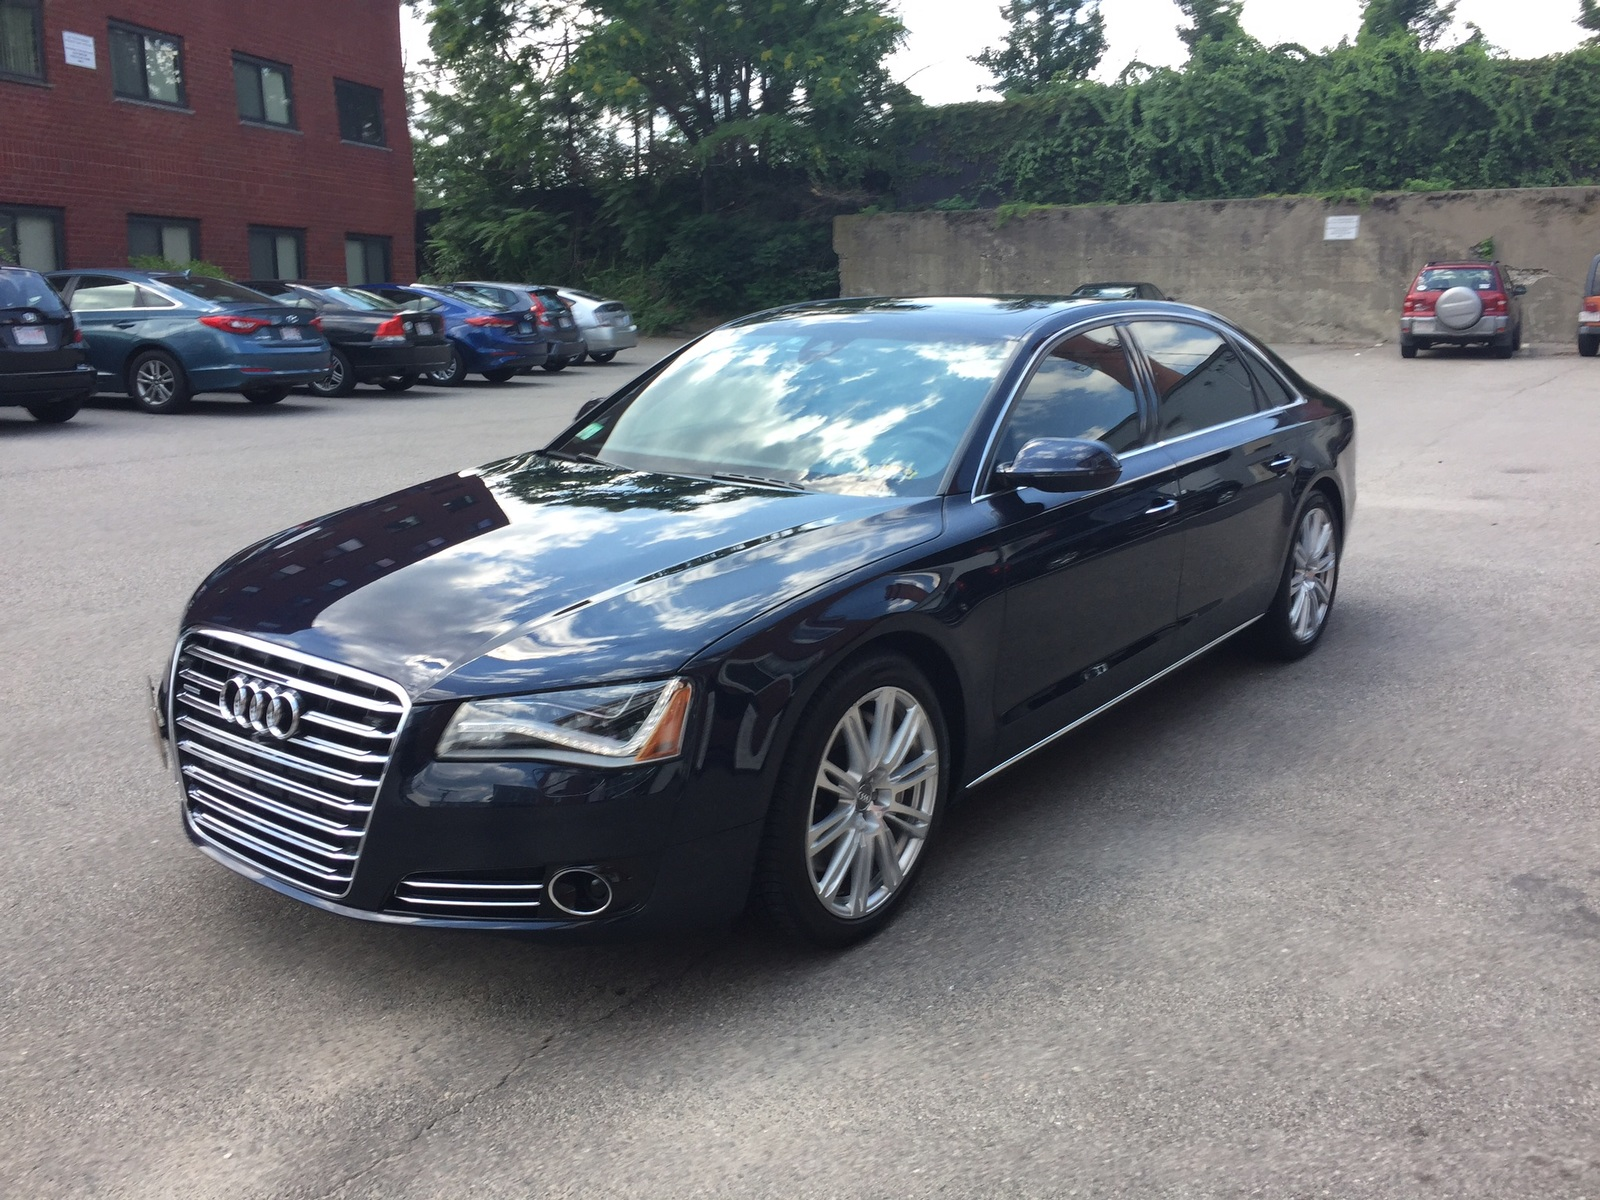 Midnight blue 2014 Audi A8 Long wheel base